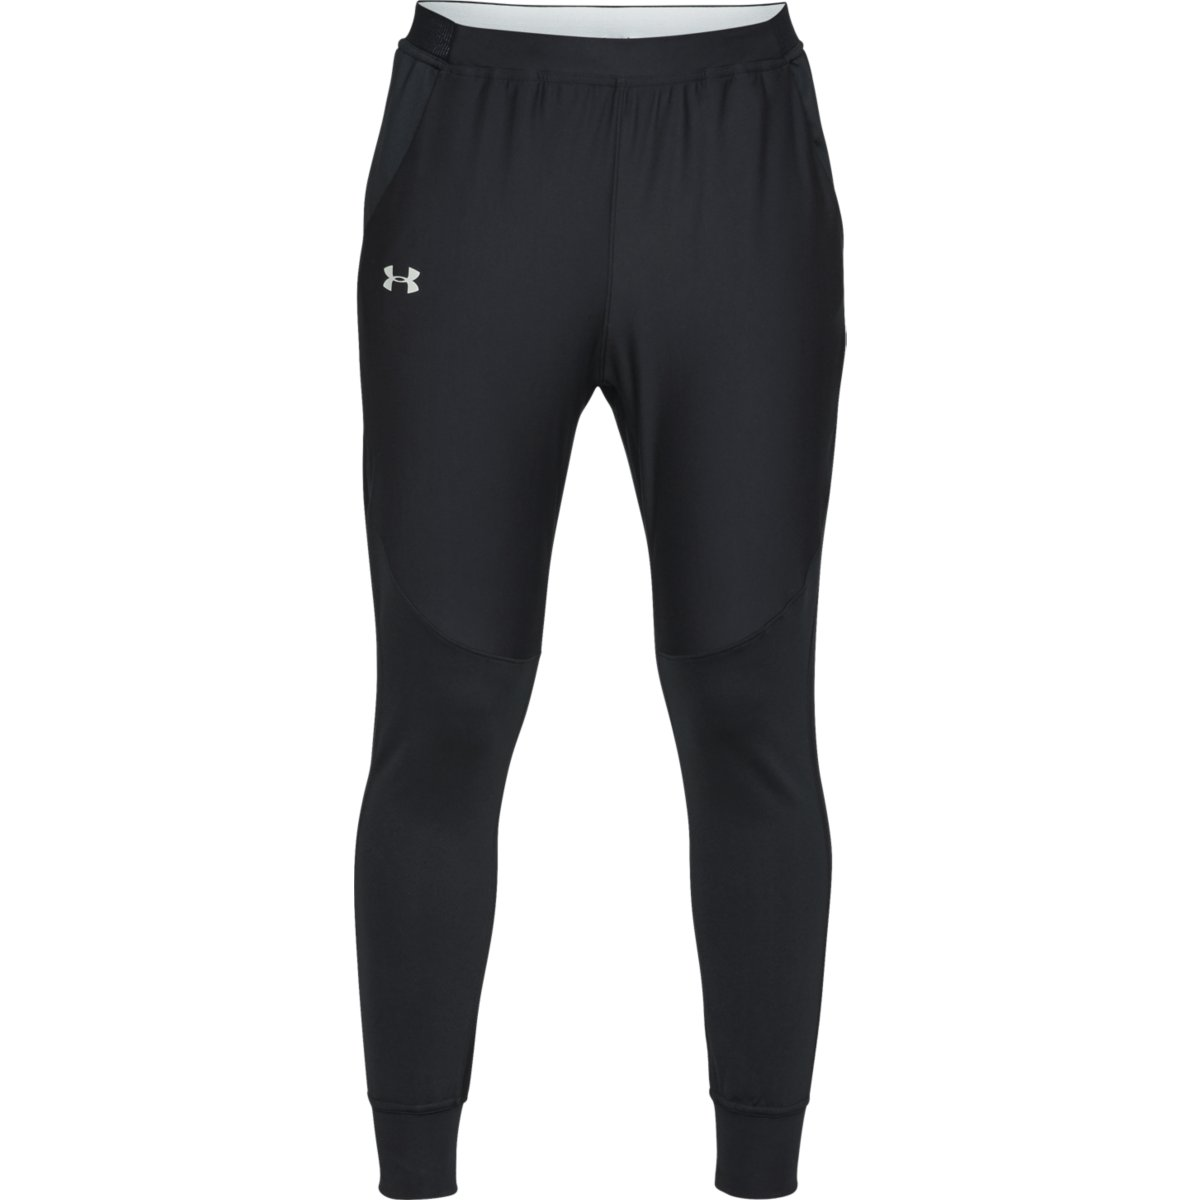 ace8a48f2ee71f Wiggle | Under Armour Women's ColdGear Reactor Run Jogger | Tights